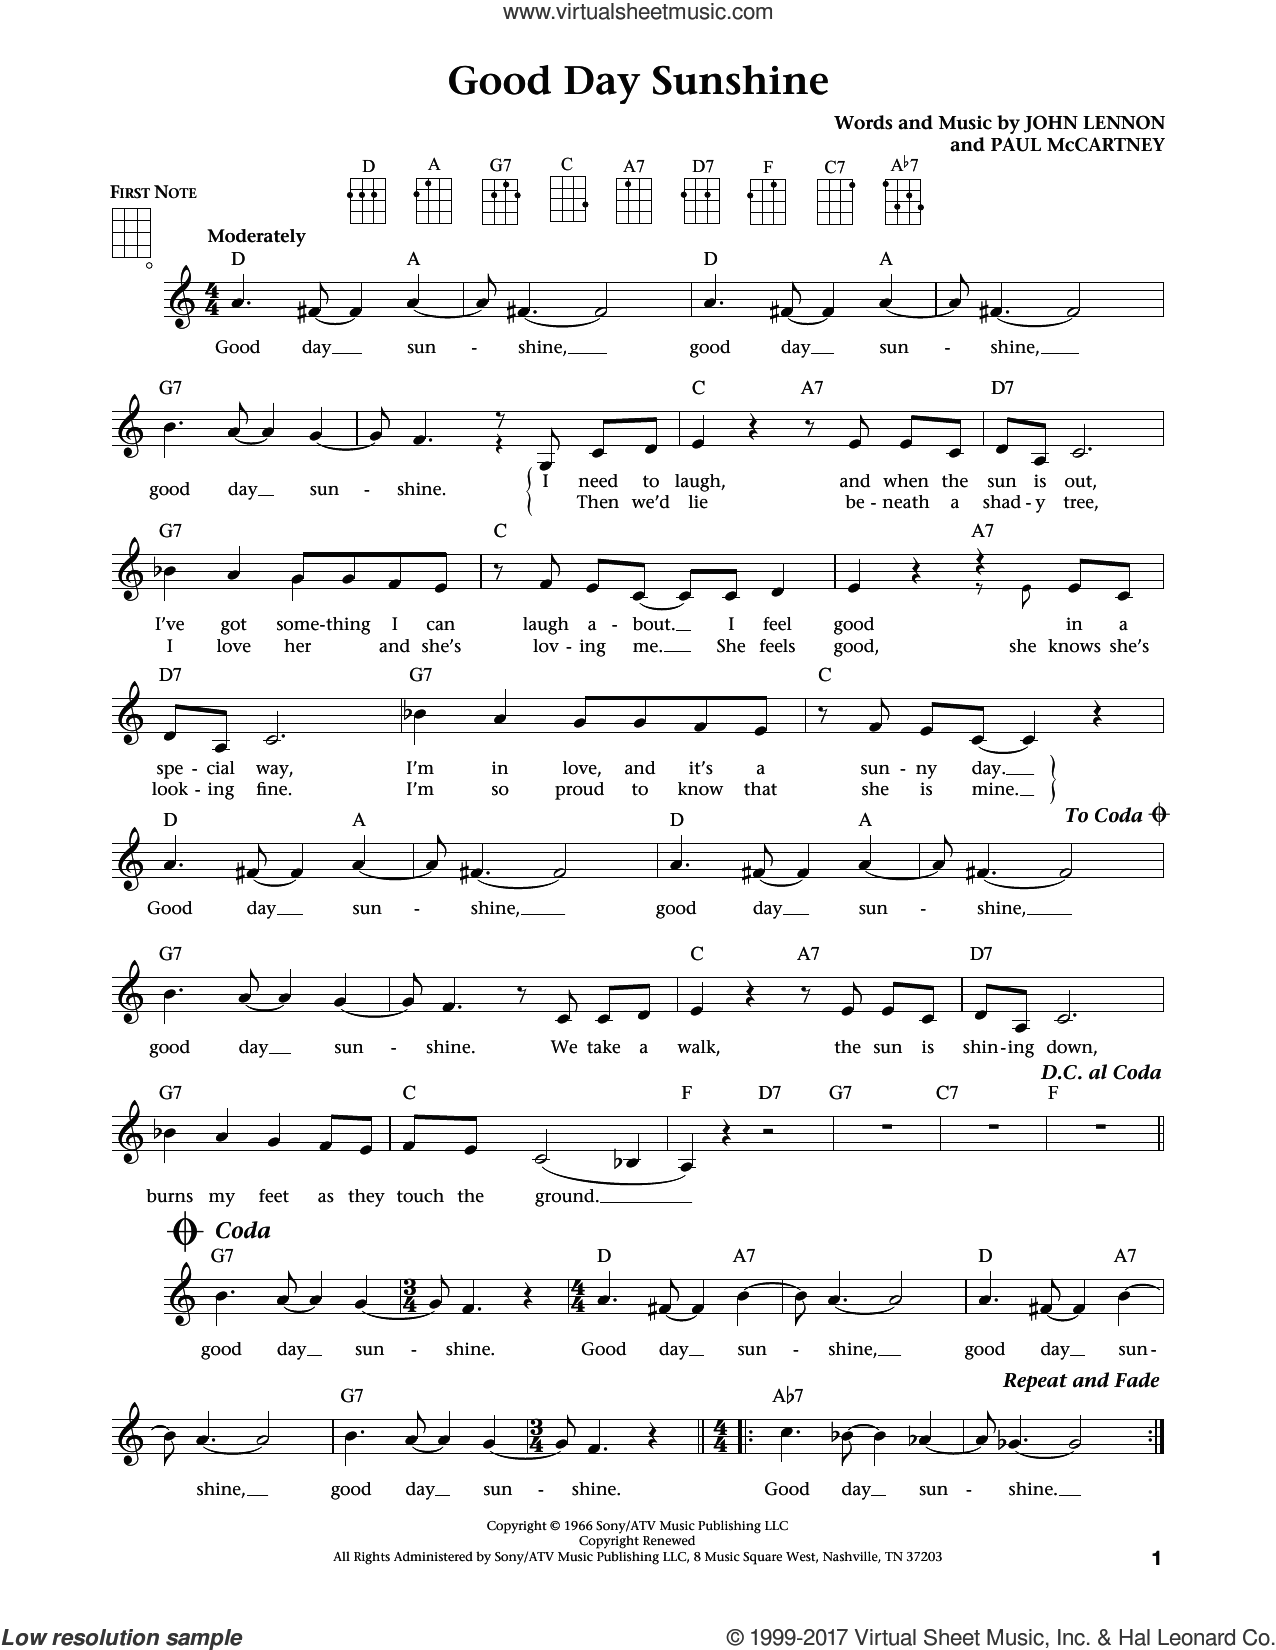 Good Day Sunshine sheet music for ukulele by The Beatles, Jim Beloff, Liz Beloff, John Lennon and Paul McCartney, intermediate skill level